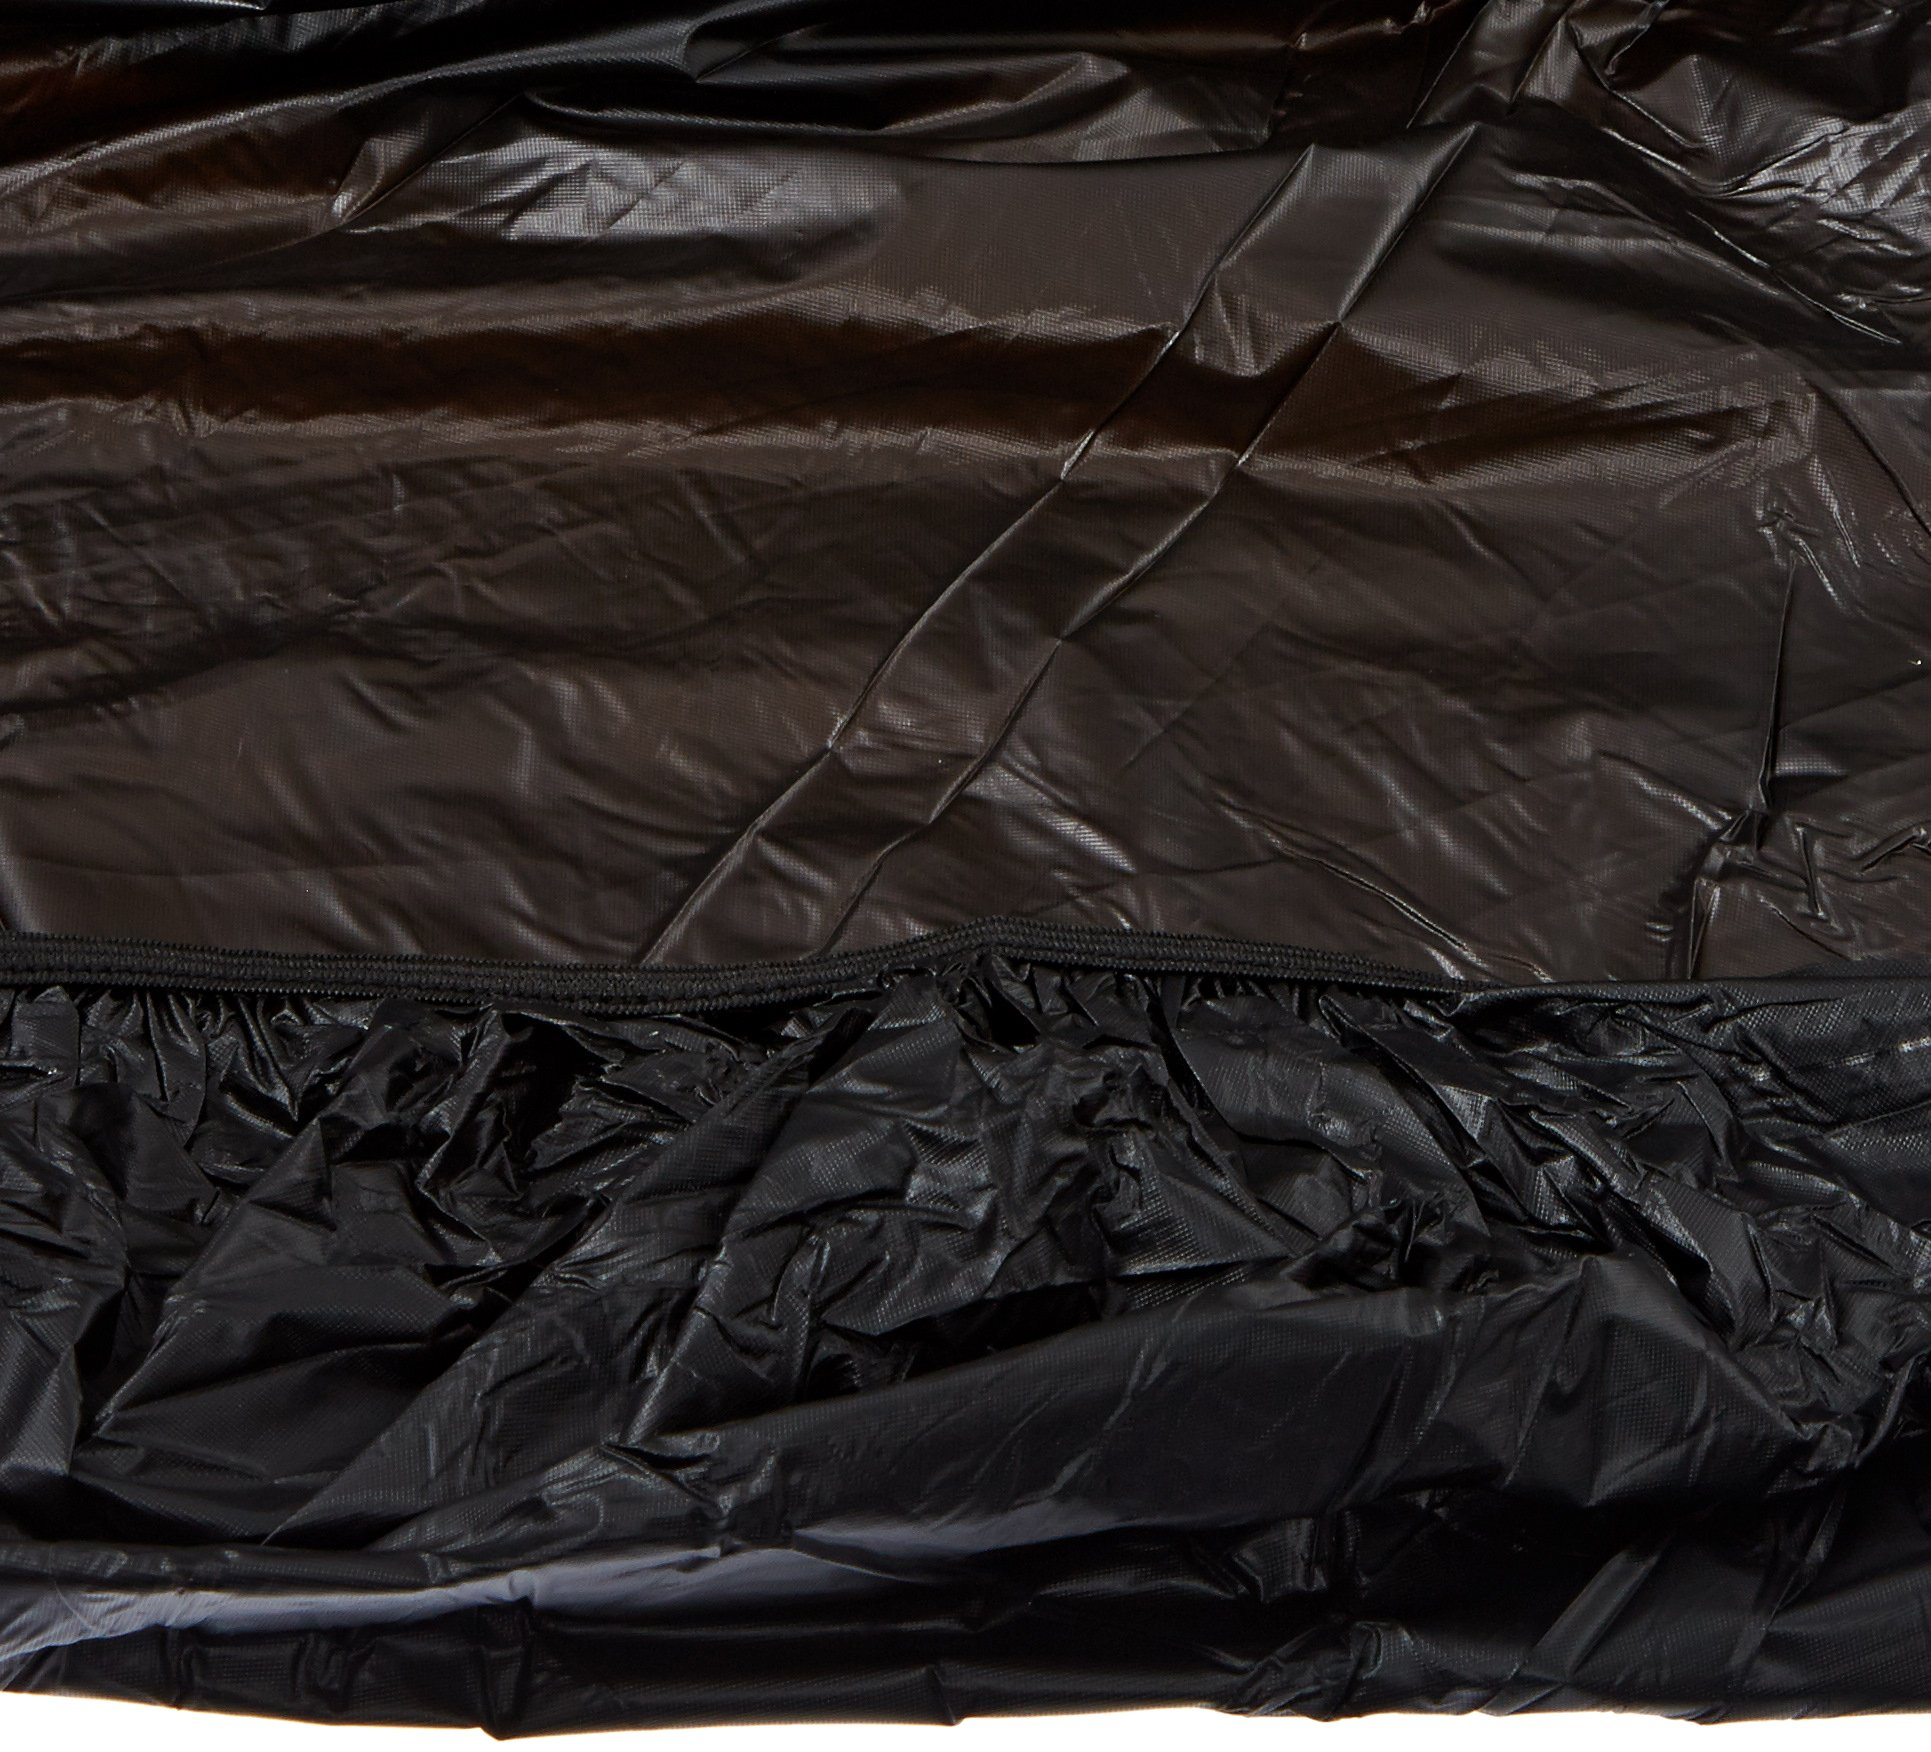 Kwik-Cover 3072PK-BLK 30'' X 72'' Kwik-Cover- Black Fitted Table Cover (1 full case of 50) by Kwik-Covers